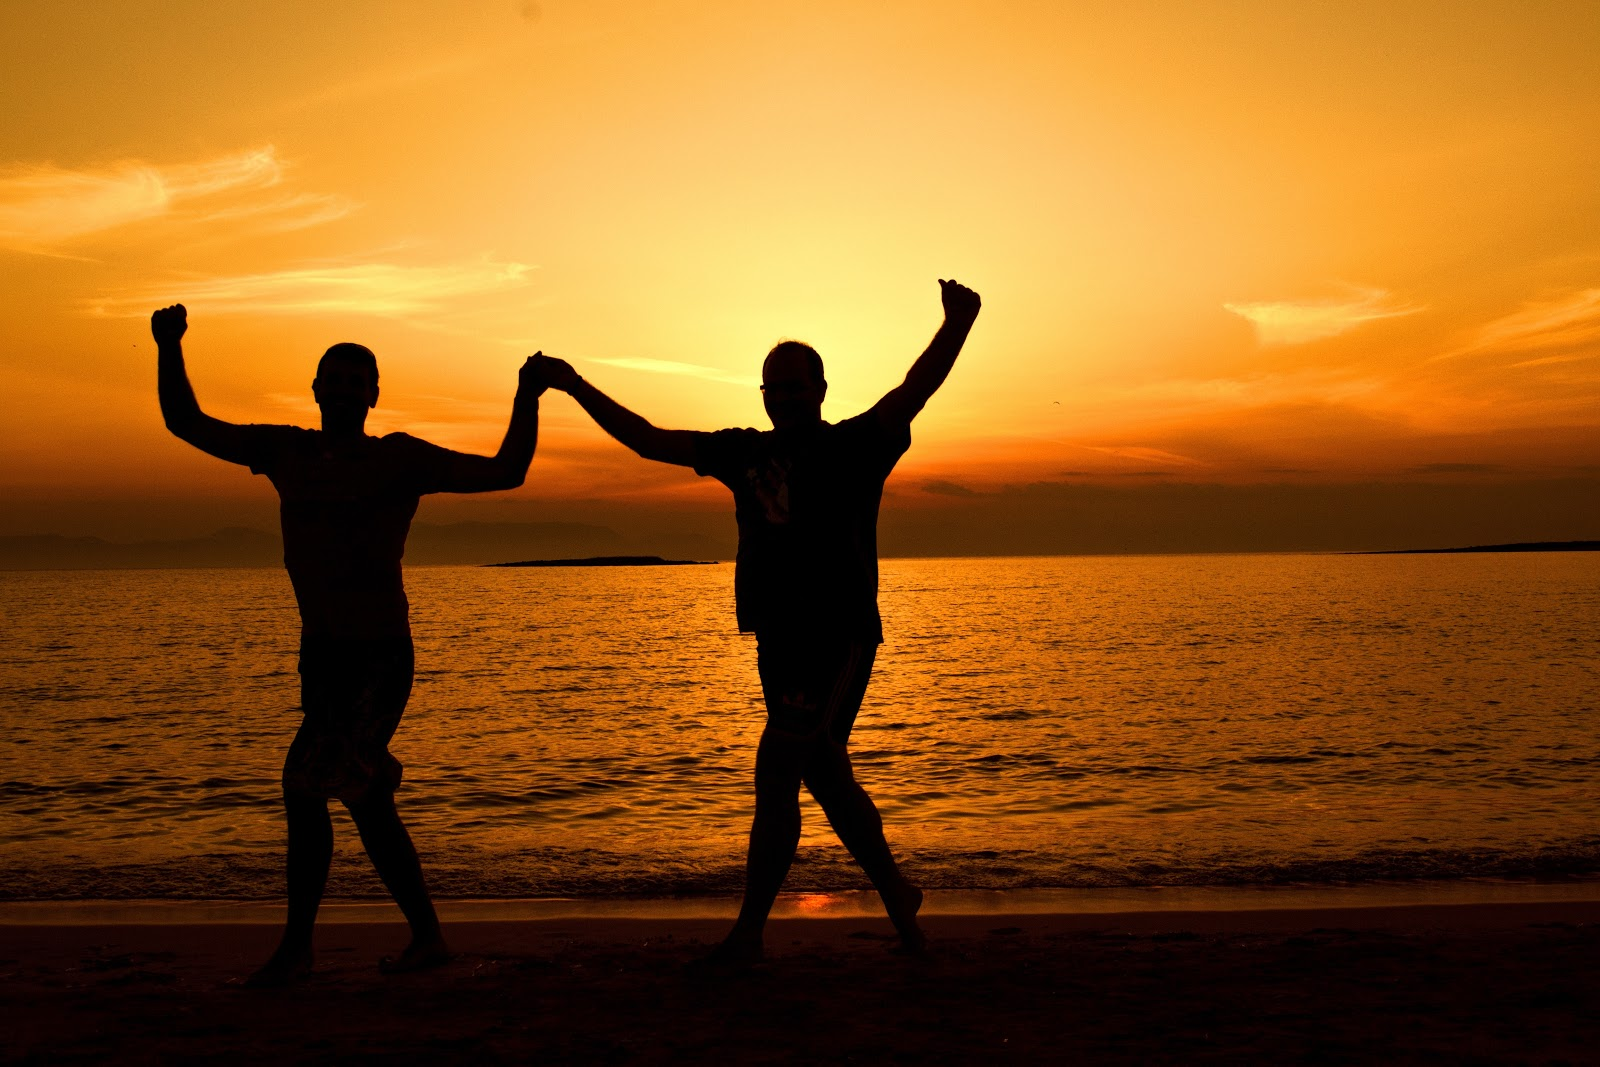 Silhouette of couple holding hand up in celebration agaisnt an ocean and sunset